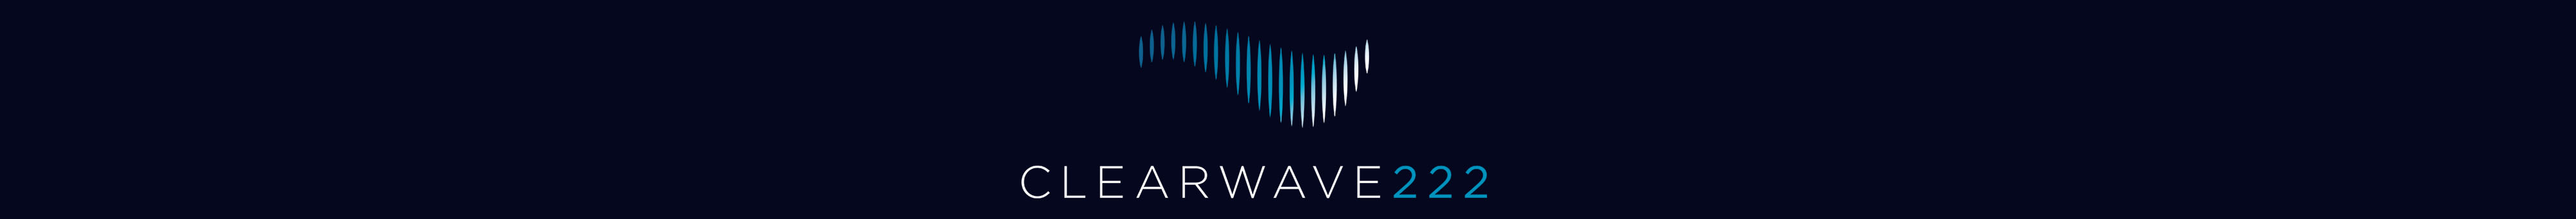 clearwaves222 logo ikoniclifts